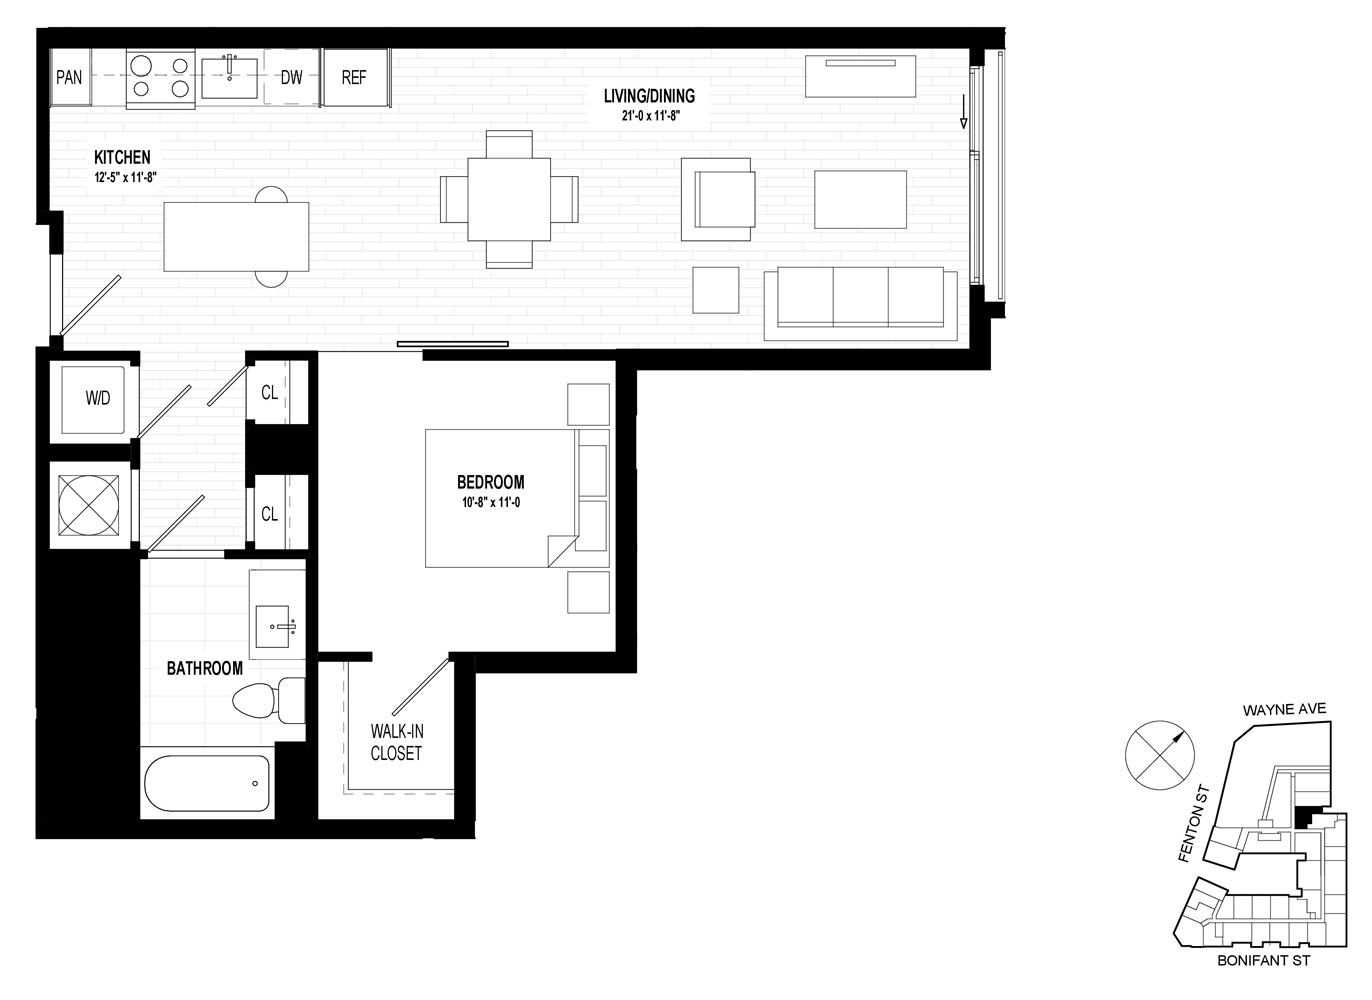 P0578887 761aa19 central a18 685 2 floorplan